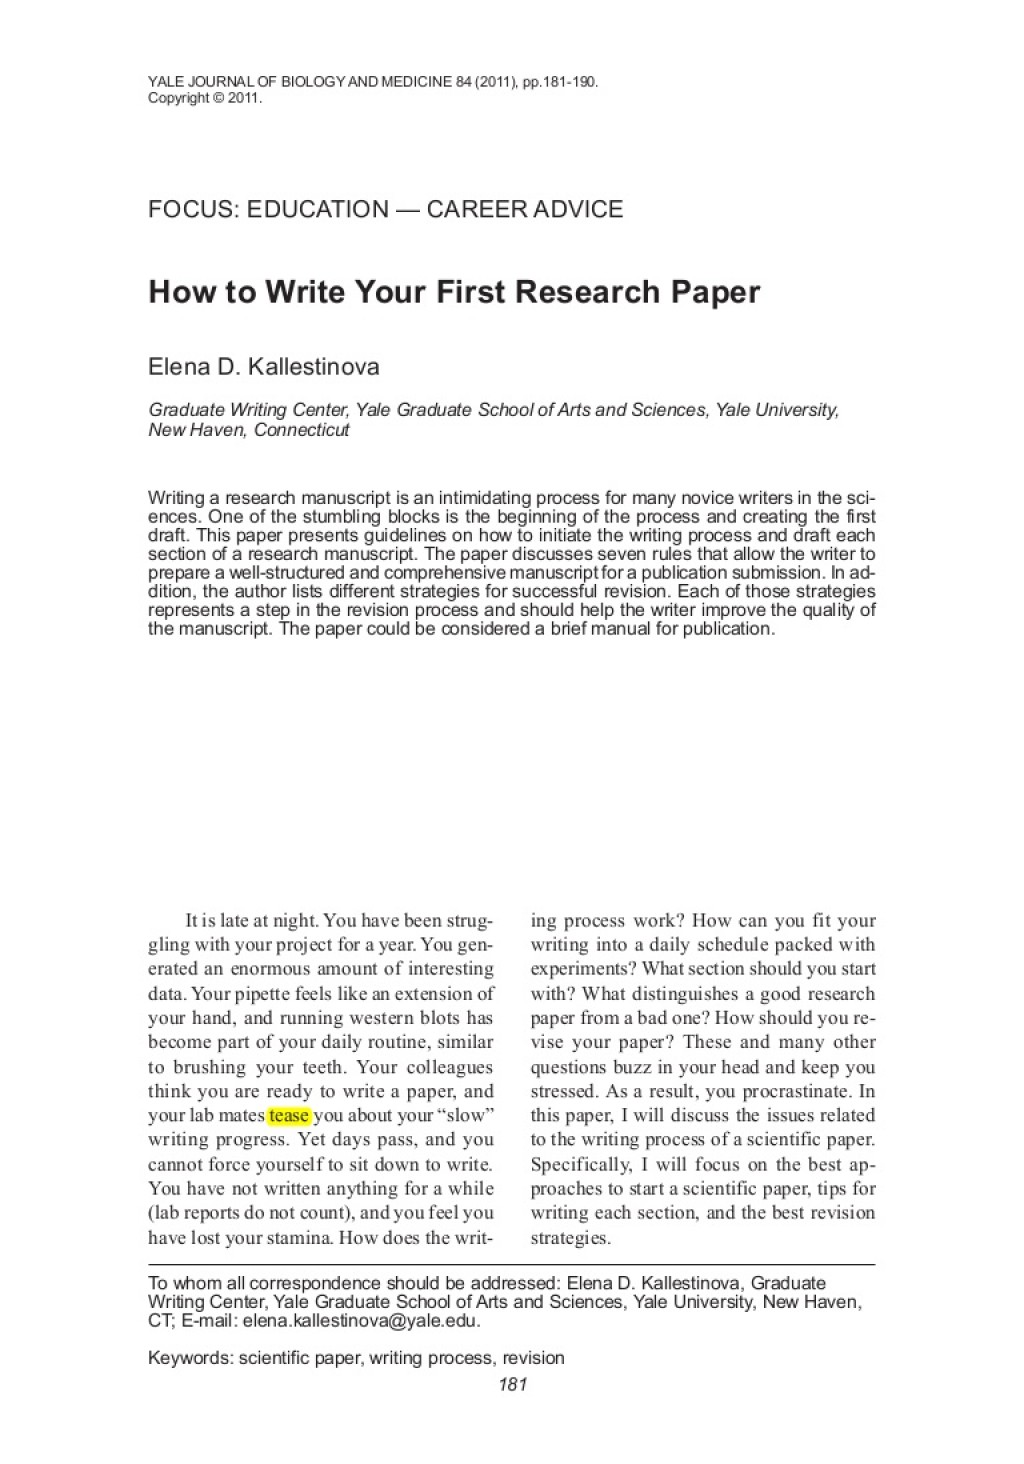 013 How To Write Research Papers Paper Howtowriteyourfirstresearchpaper Lva1 App6891 Thumbnail Best A Conclusion For Ppt Introduction College Dummies Large